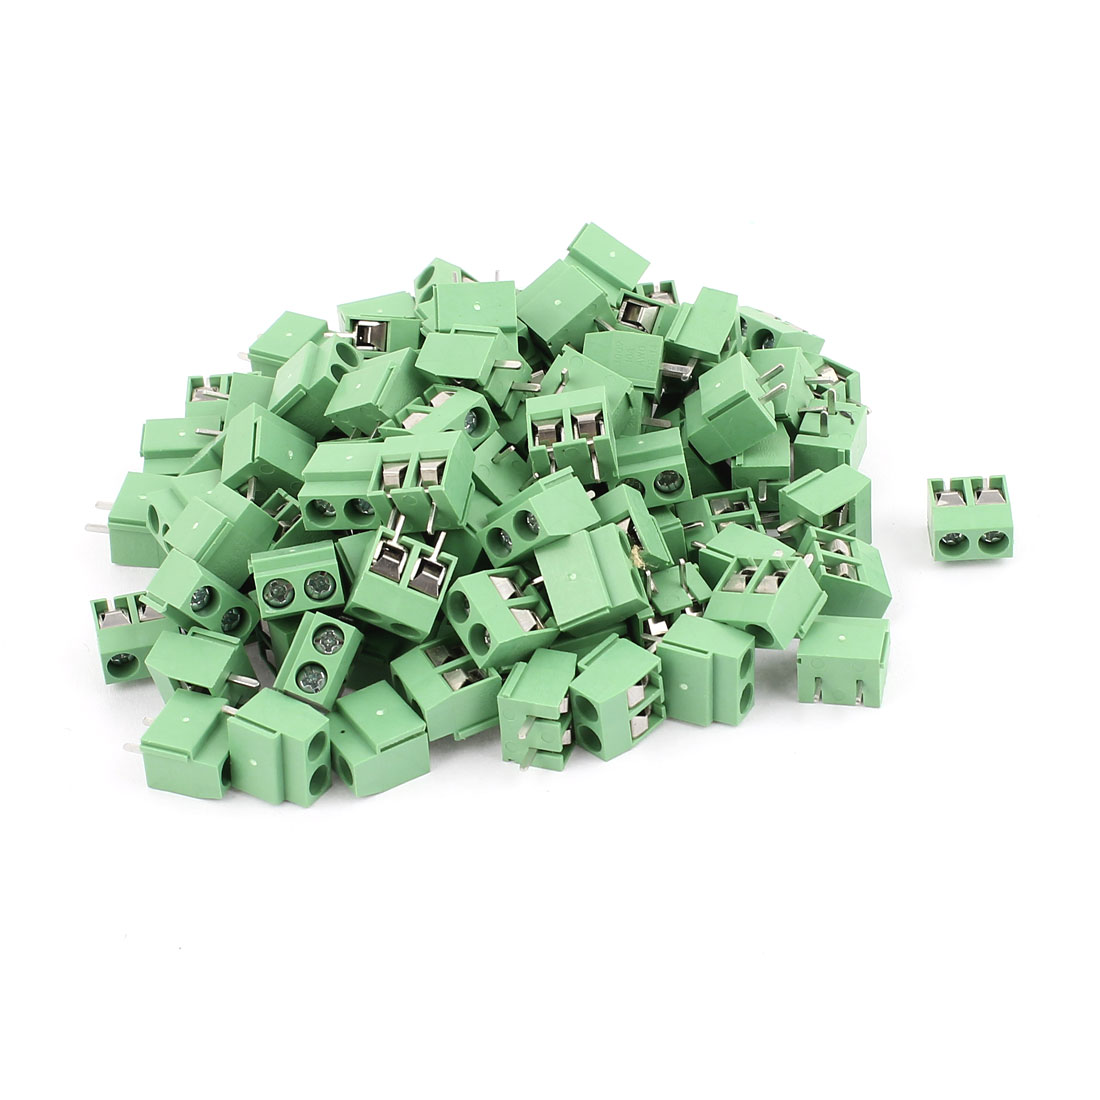 100 Pcs 5.0V 300V 10A 2 positions 1mm Pitch Pluggable Terminal Block Green